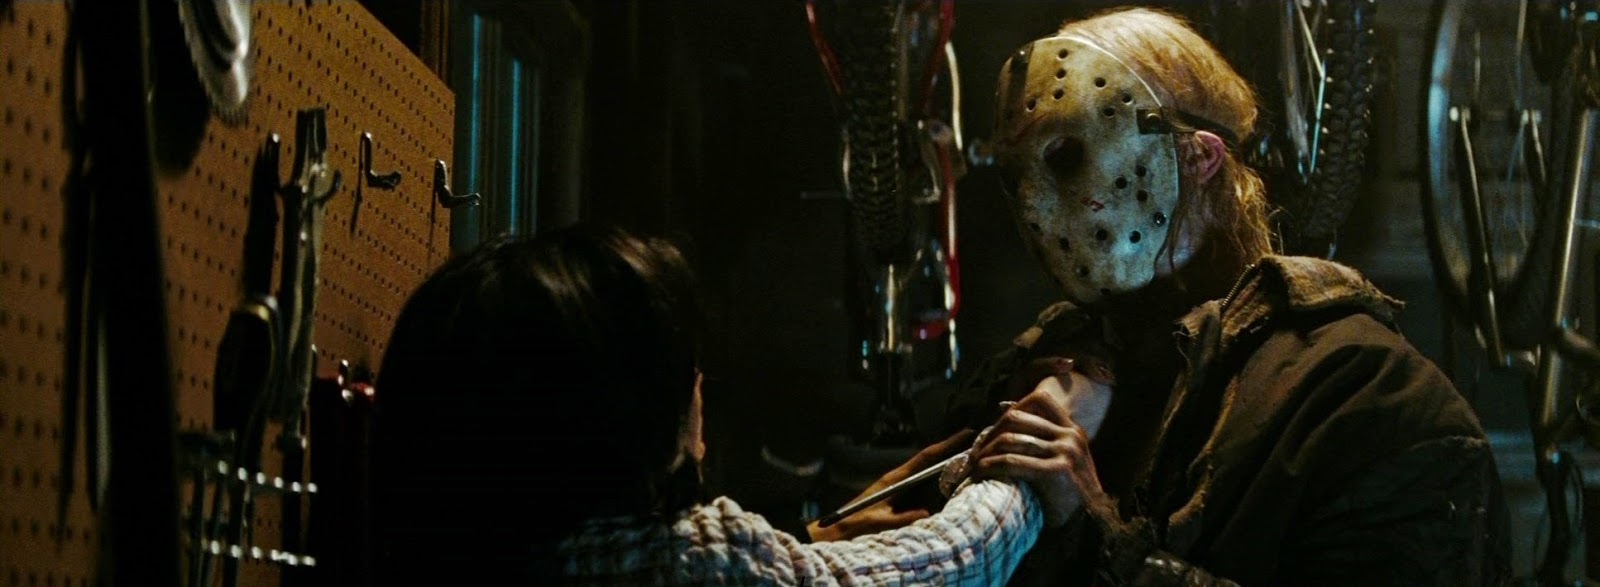 Friday 13th Pic 5